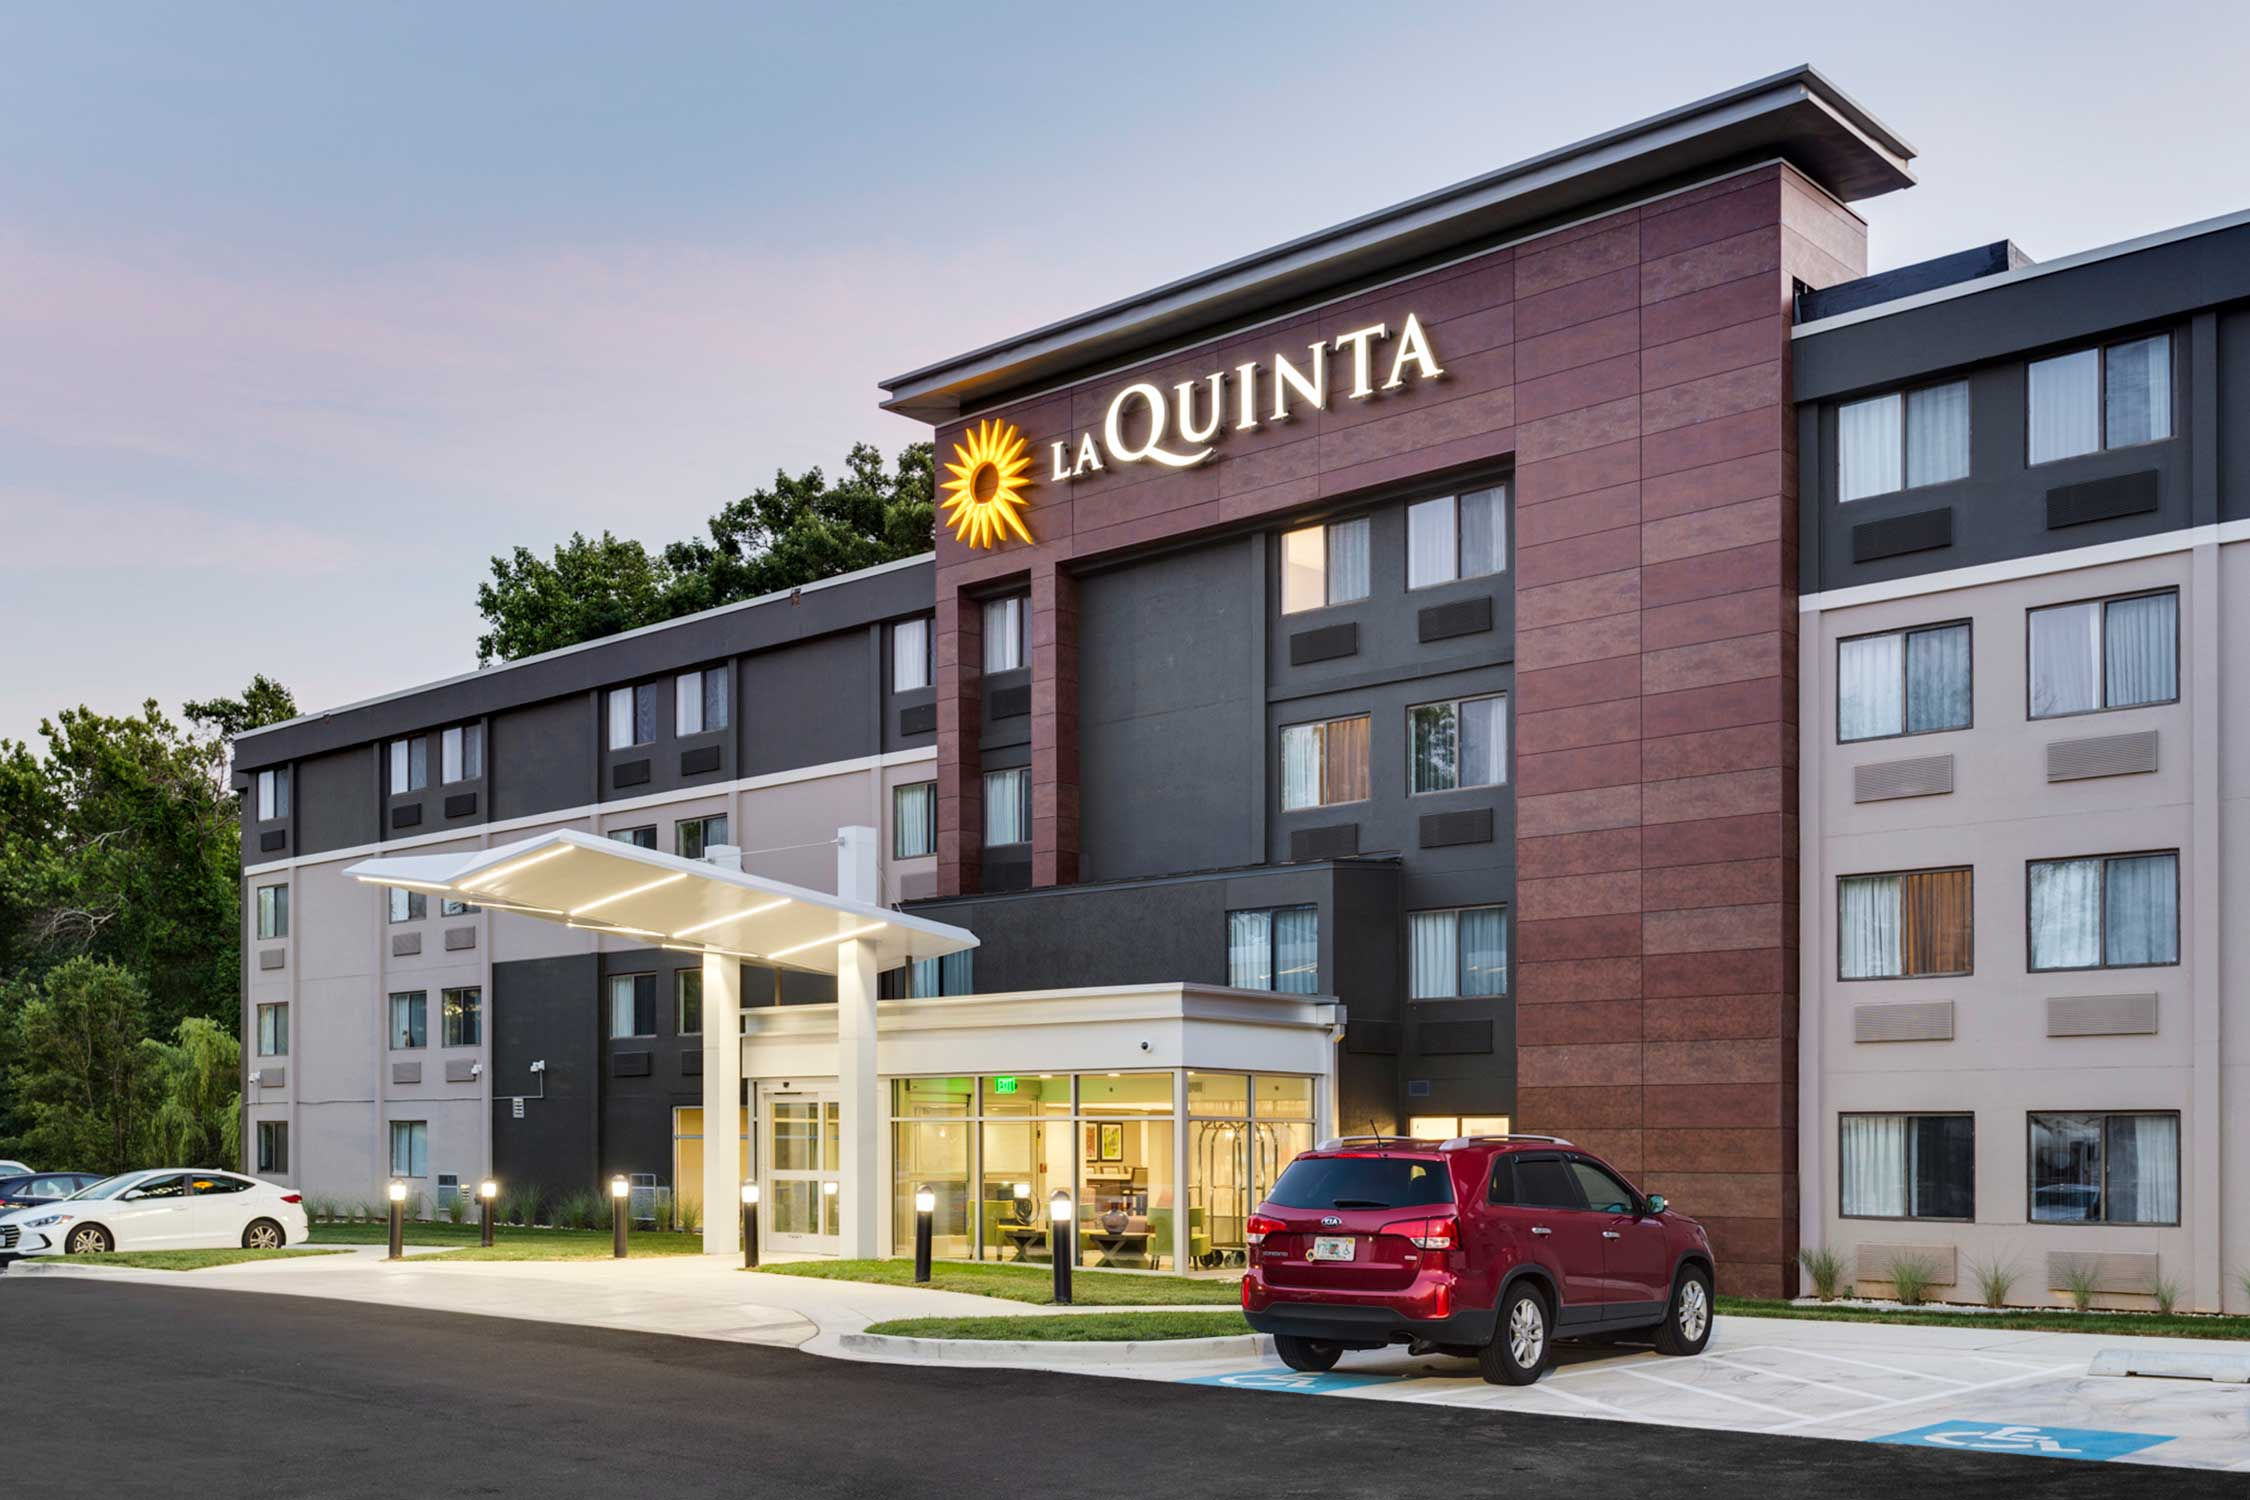 laquinta in jessup md